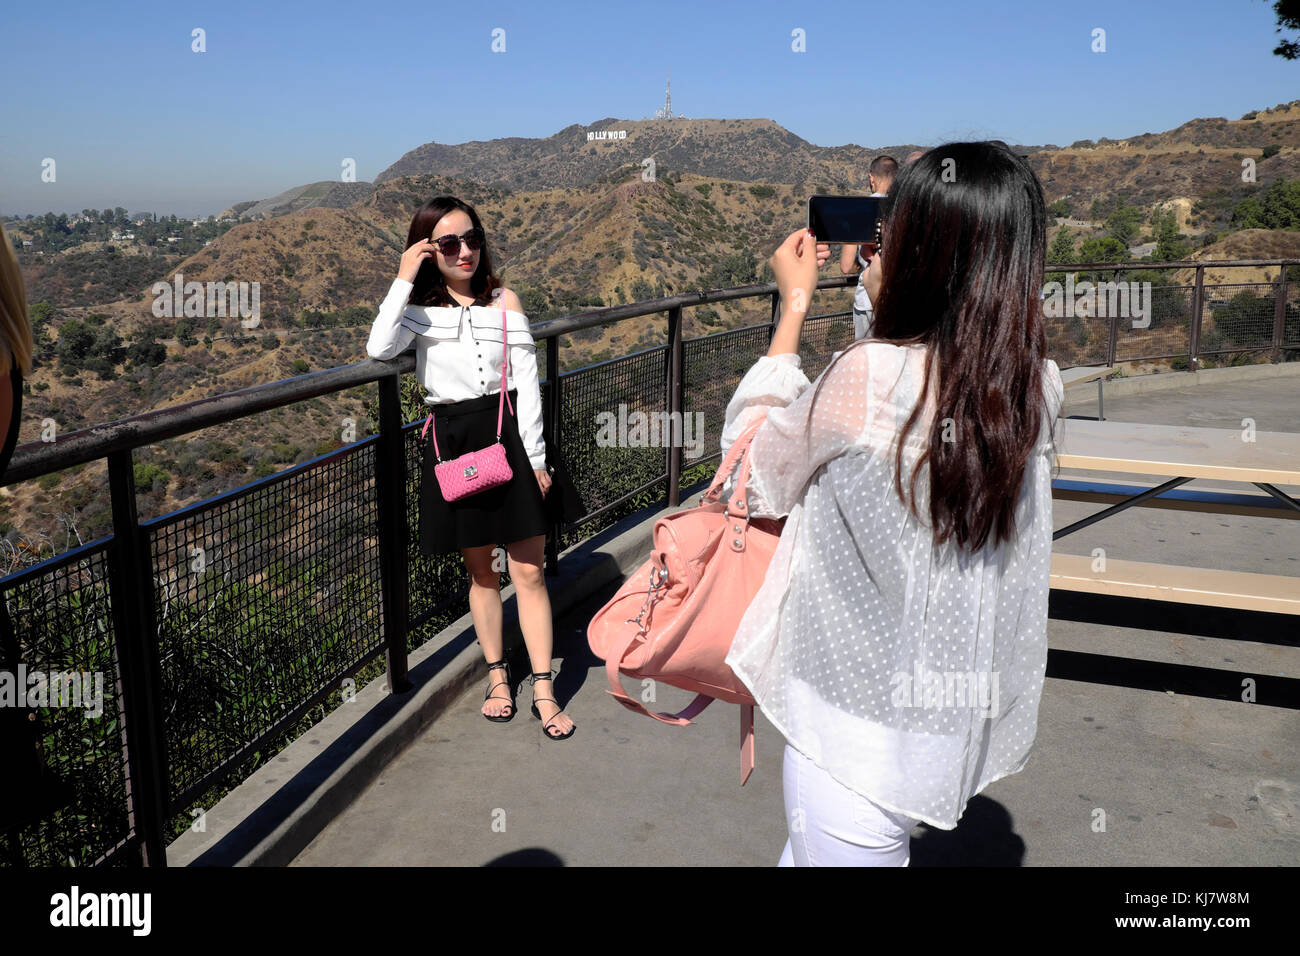 Young Chinese woman taking photo of friend with iphone camera & Hollywood sign at Griffith Park Observatory Los Angeles, California  USA KATHY DEWITT Stock Photo